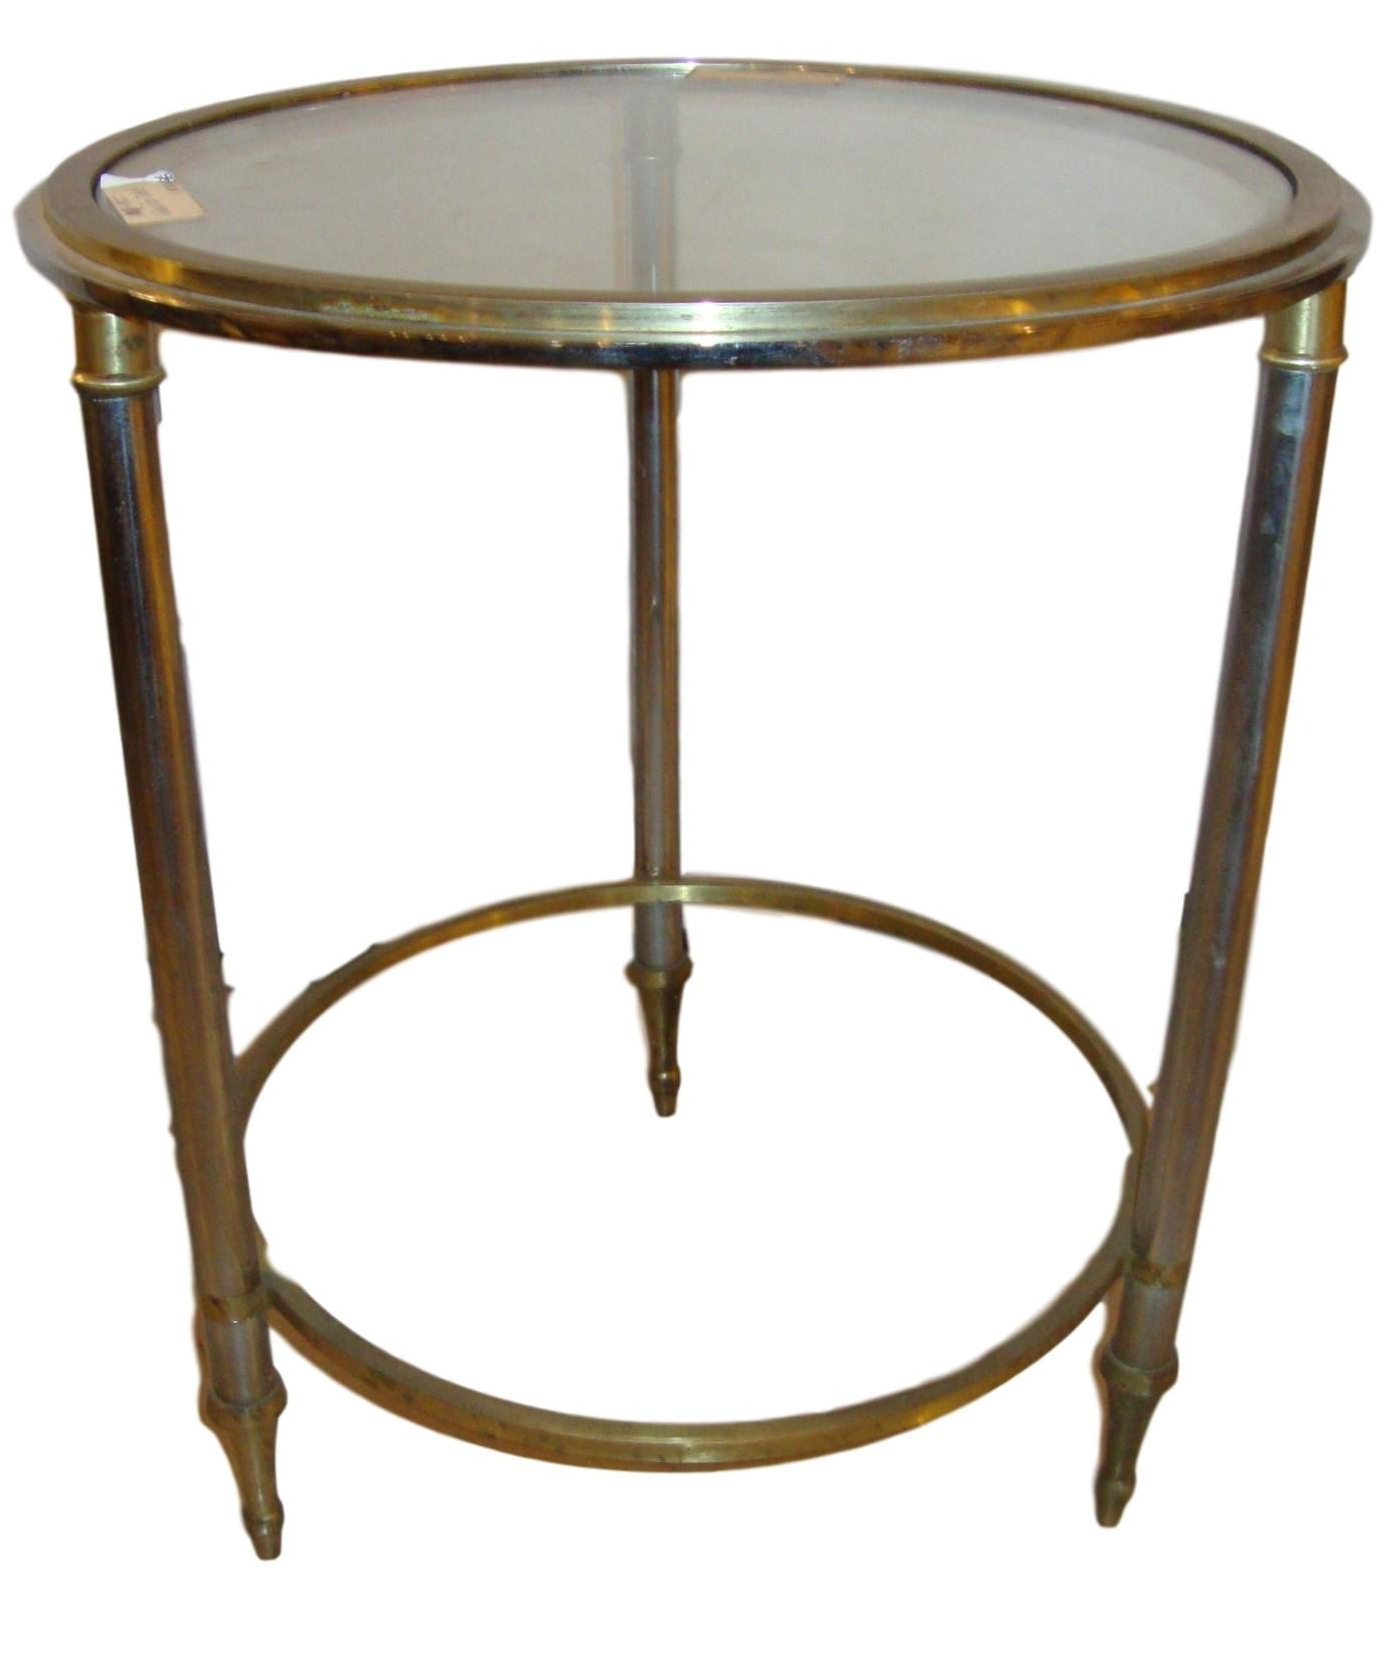 Picture of: Hollywood Regency Style Bronze Bamboo Bouilliotte Glass Top End Or Side Table Chairish